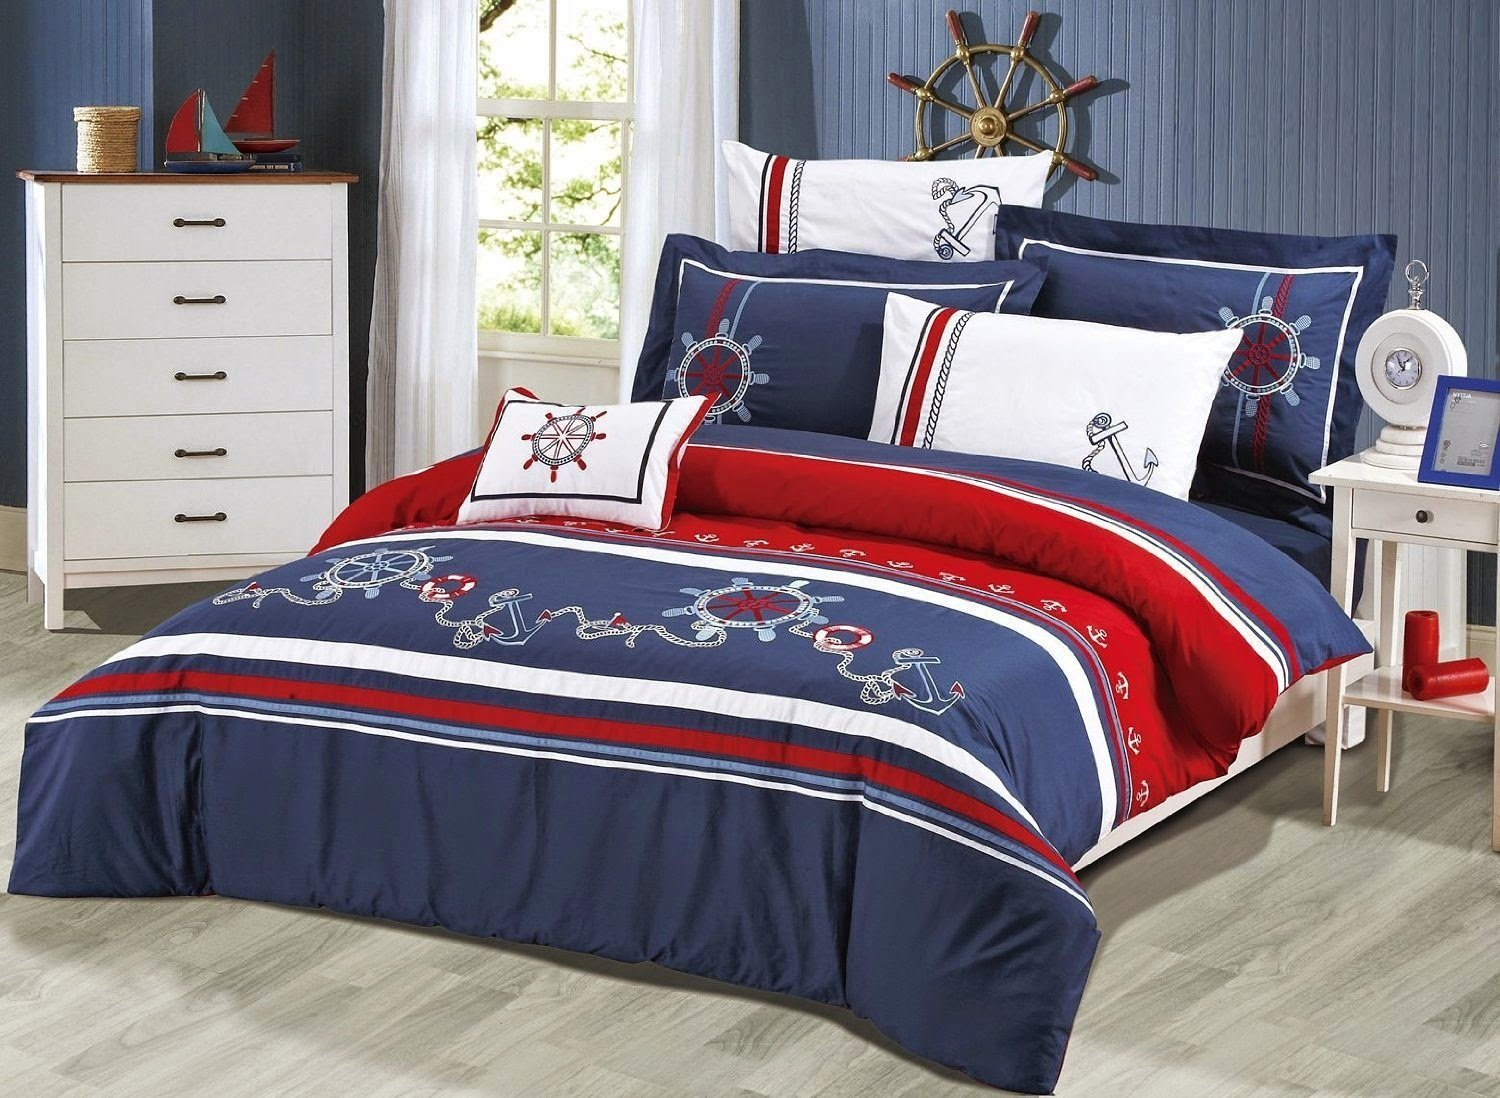 Best Bedroom Decor Ideas And Designs Top Nautical Sailor With Pictures